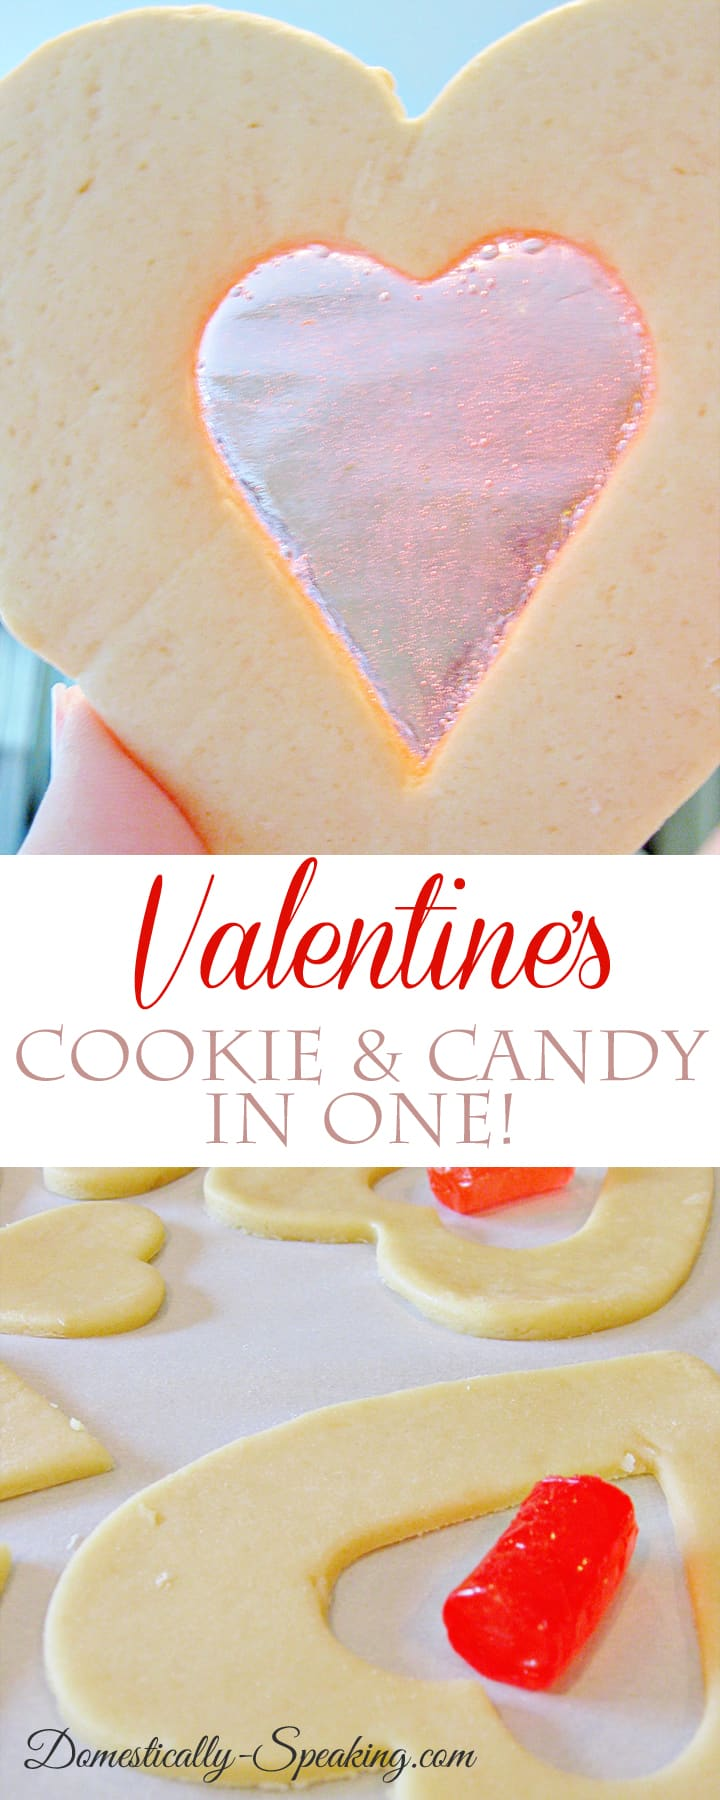 Valentine's Cookie - it's a cookie and candy in one! So simple and super cute treat for the kids on Valentine's Day!